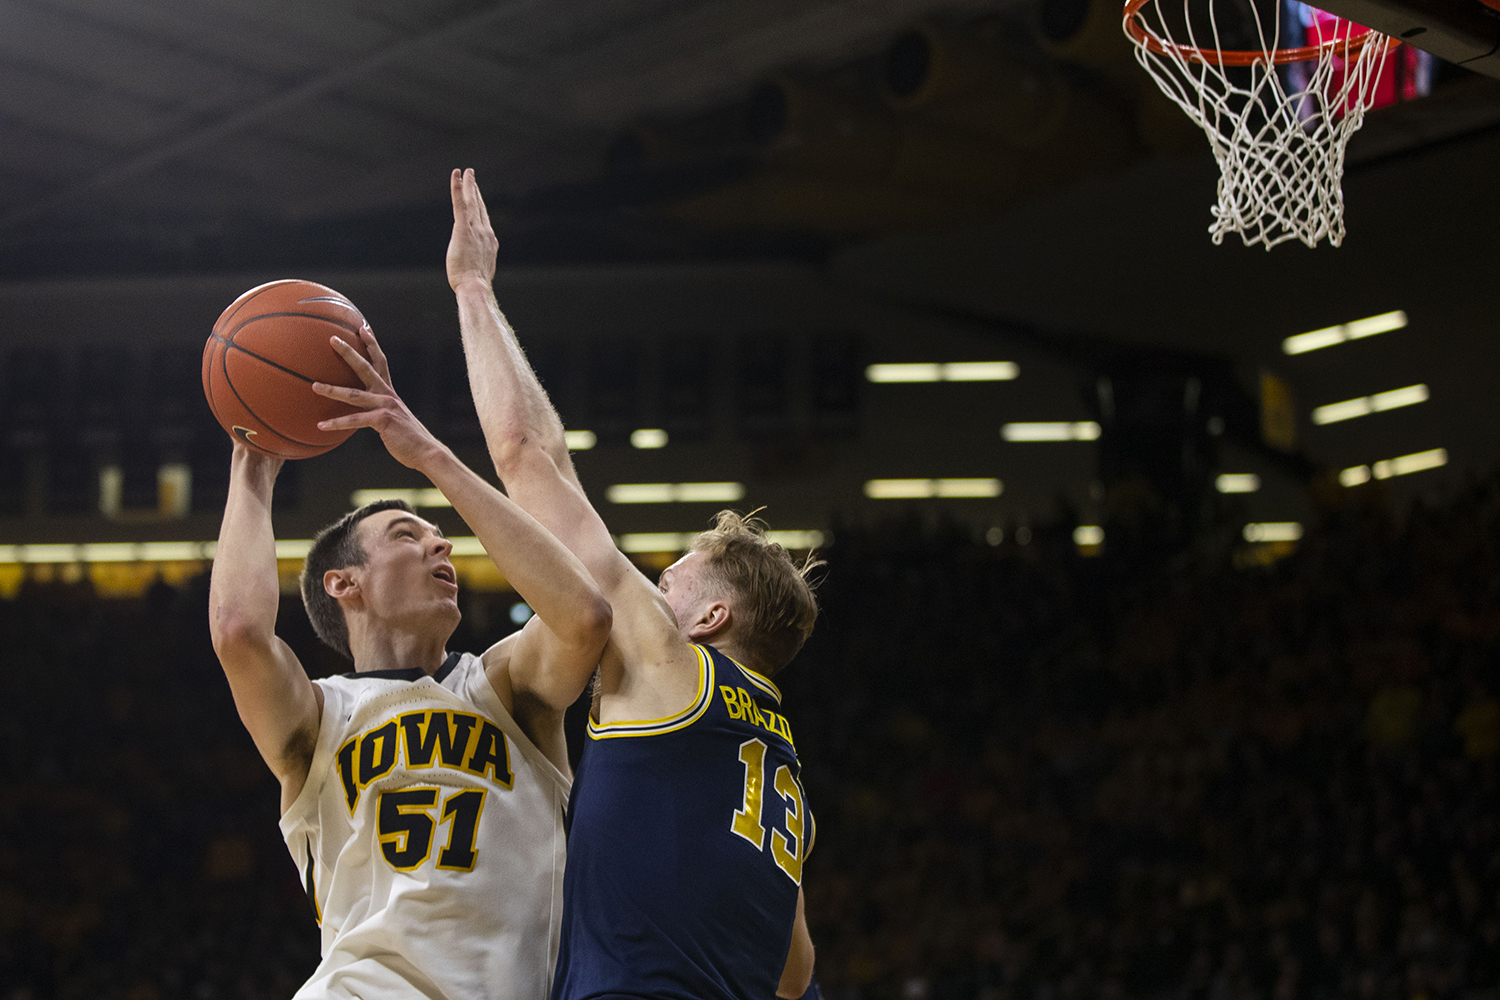 Iowa+forward+Nicholas+Baer+attempts+a+shot+during+the+Iowa%2FMichigan+men%27s+basketball+game+at+Carver-Hawkeye+Arena+on+Friday%2C+February+1%2C+2019.+The+Hawkeyes+took+down+the+No.+5+ranked+Wolverines%2C+74-59.+